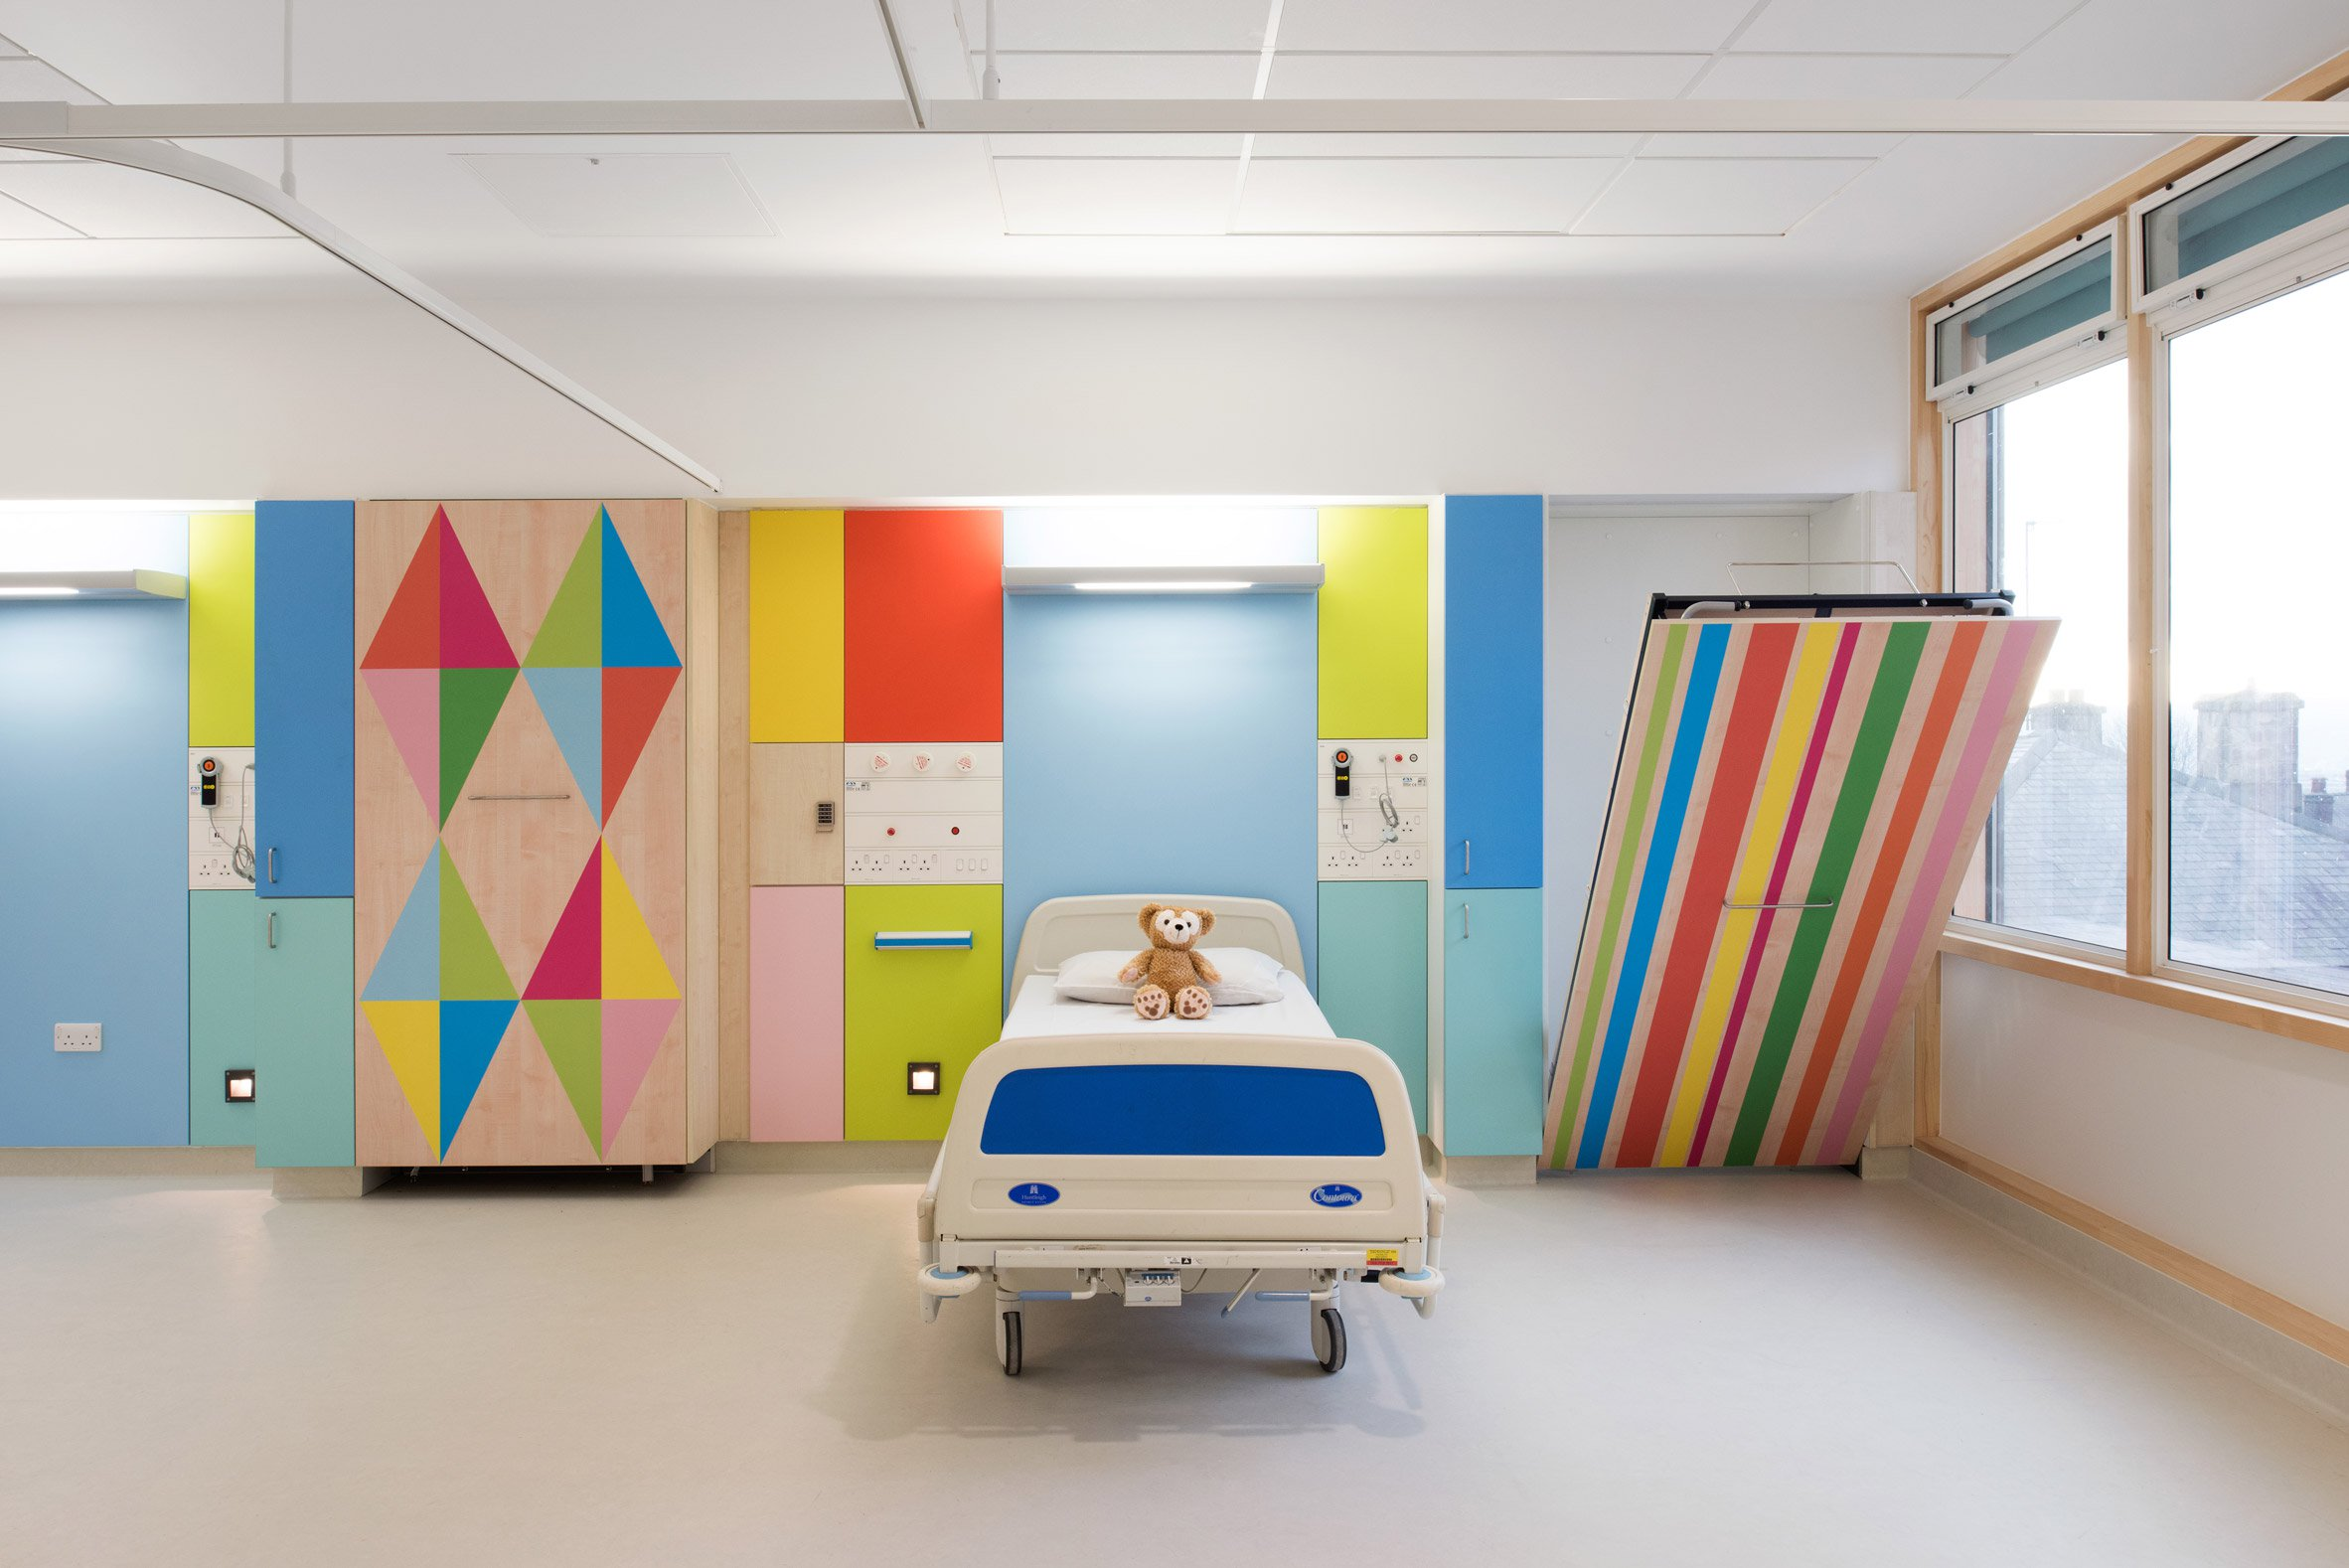 Inpatient Bedrooms and Shared Bays at Sheffield Children's Hospital